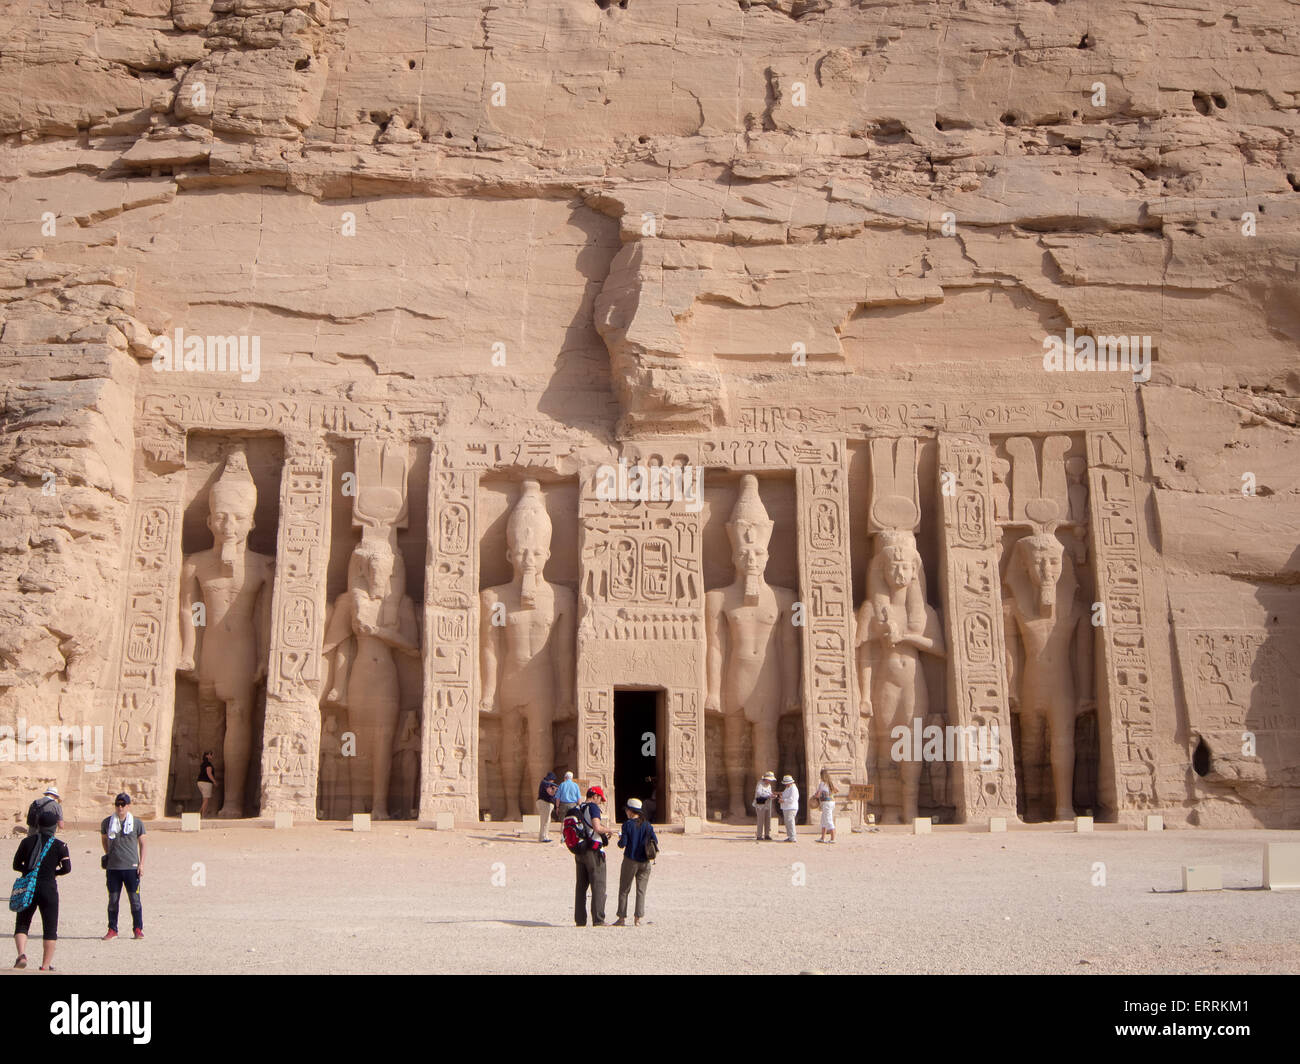 the-temple-of-hathor-and-nefertari-also-known-as-the-small-temple-ERRKM1.jpg